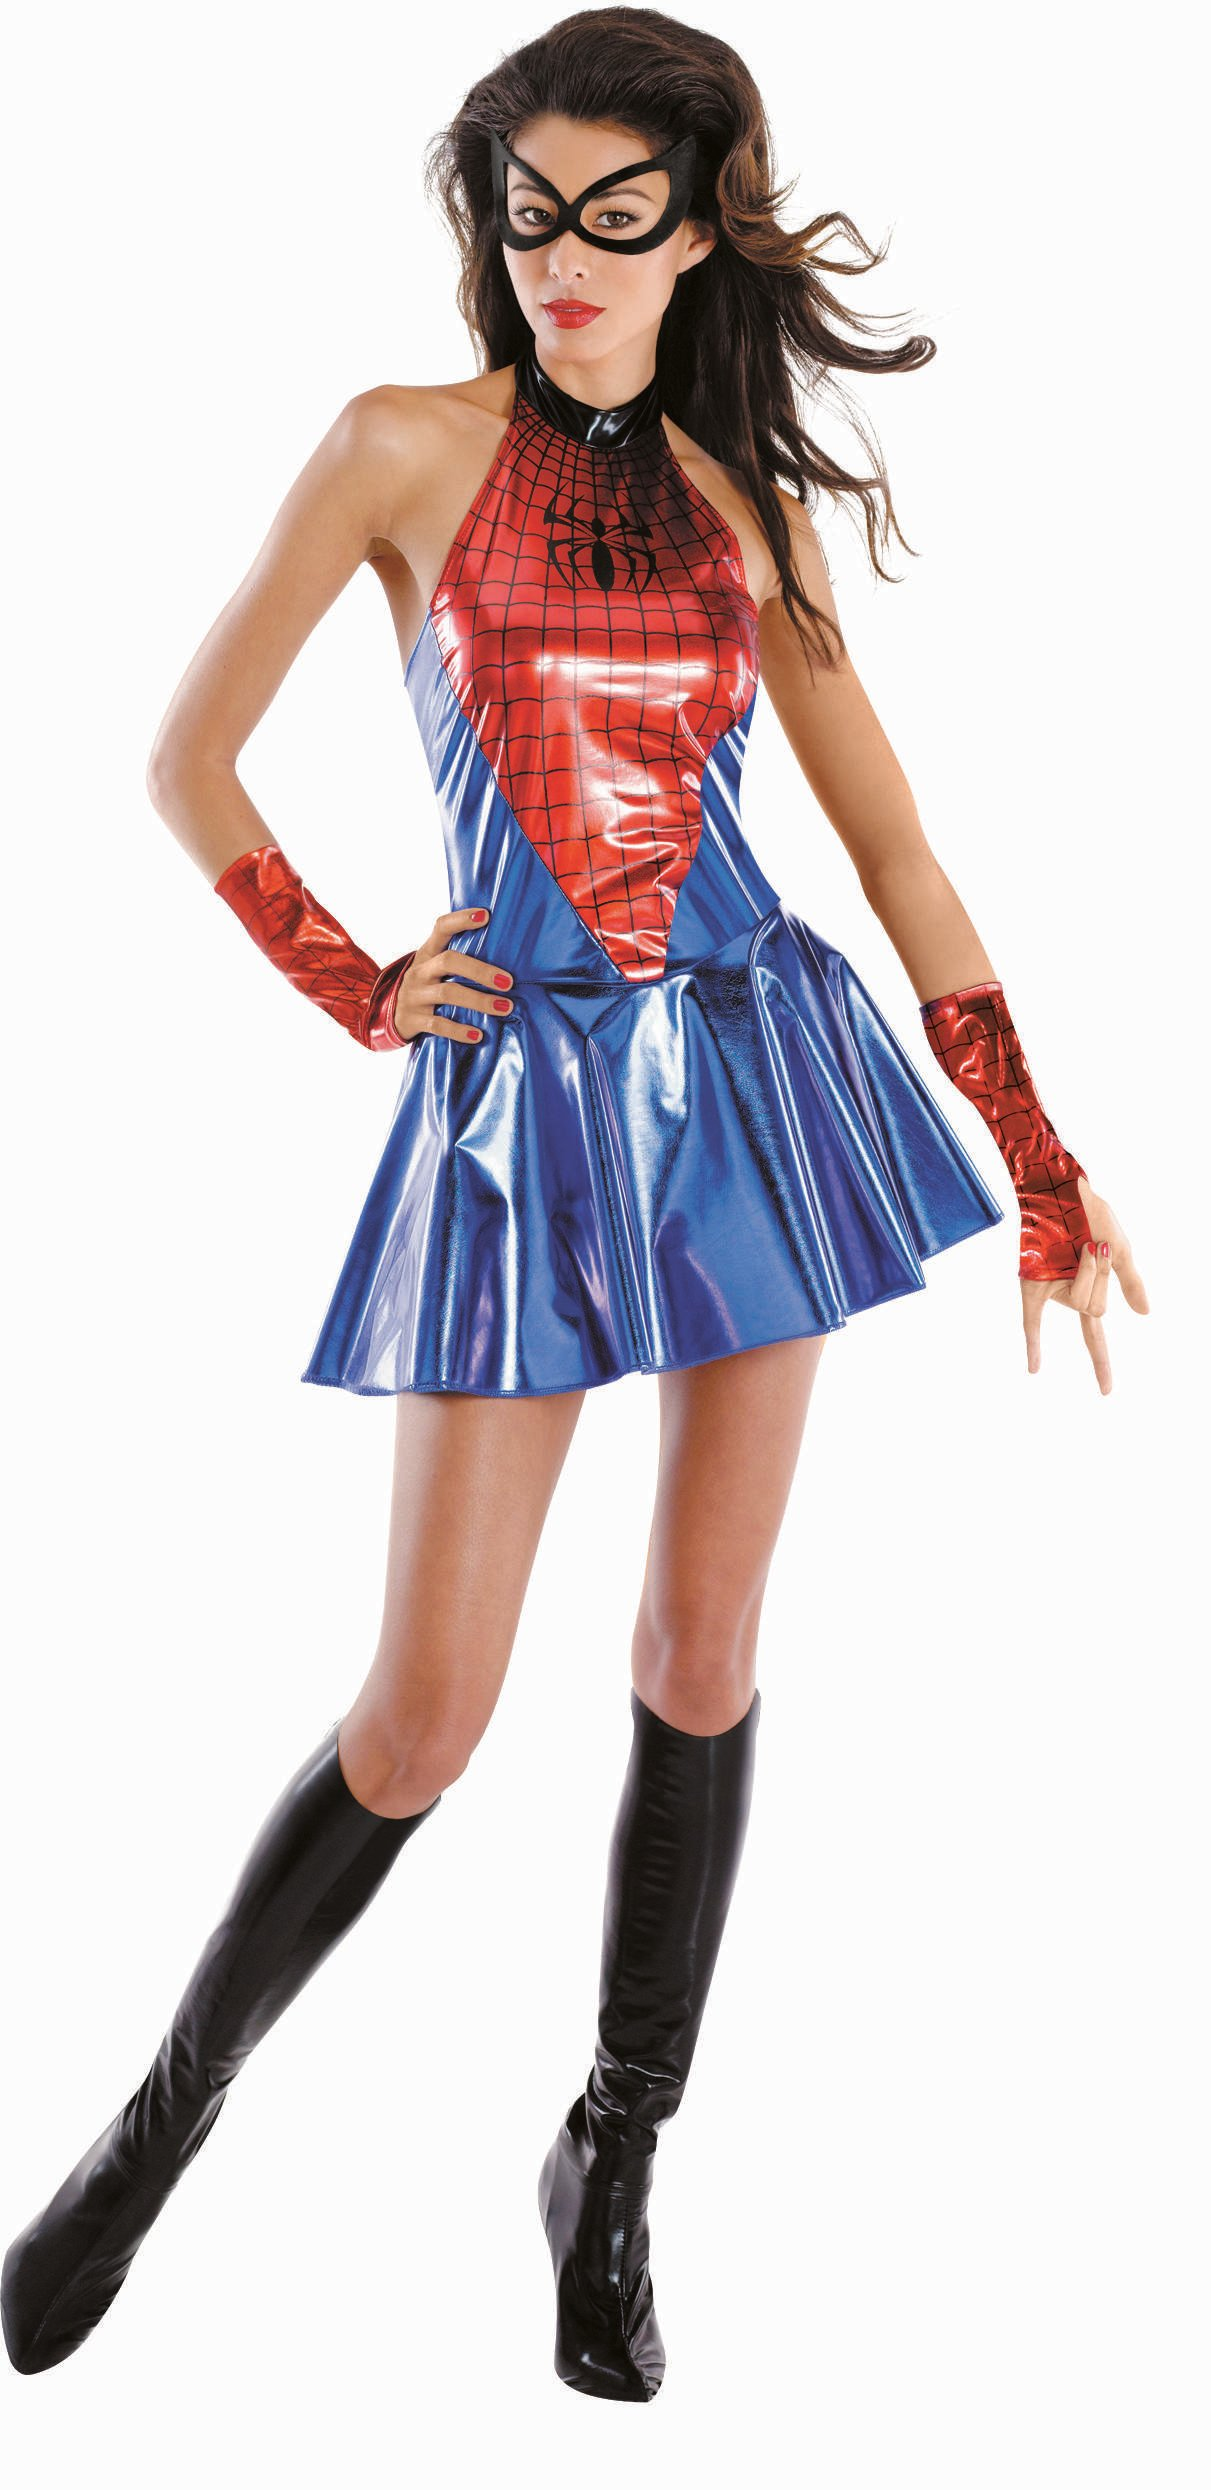 Deluxe Spider Girl Costume - The Costume Shop